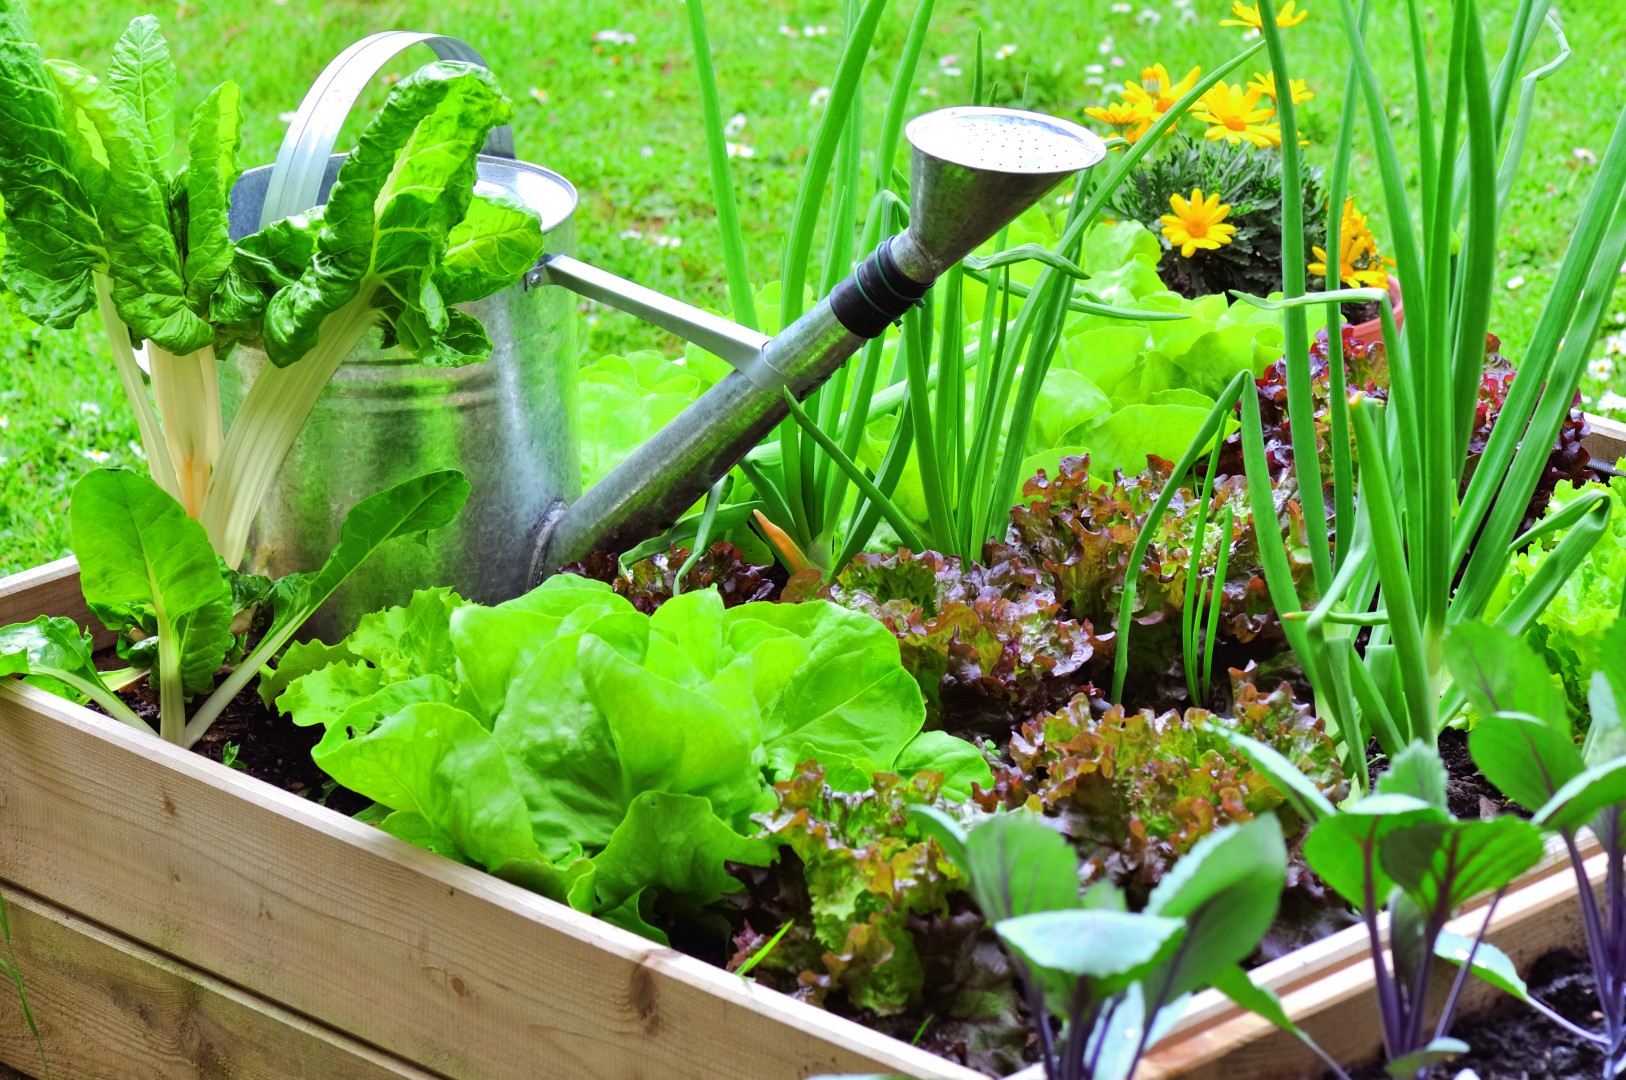 Kitchen Garden Design Beds and Watering Can